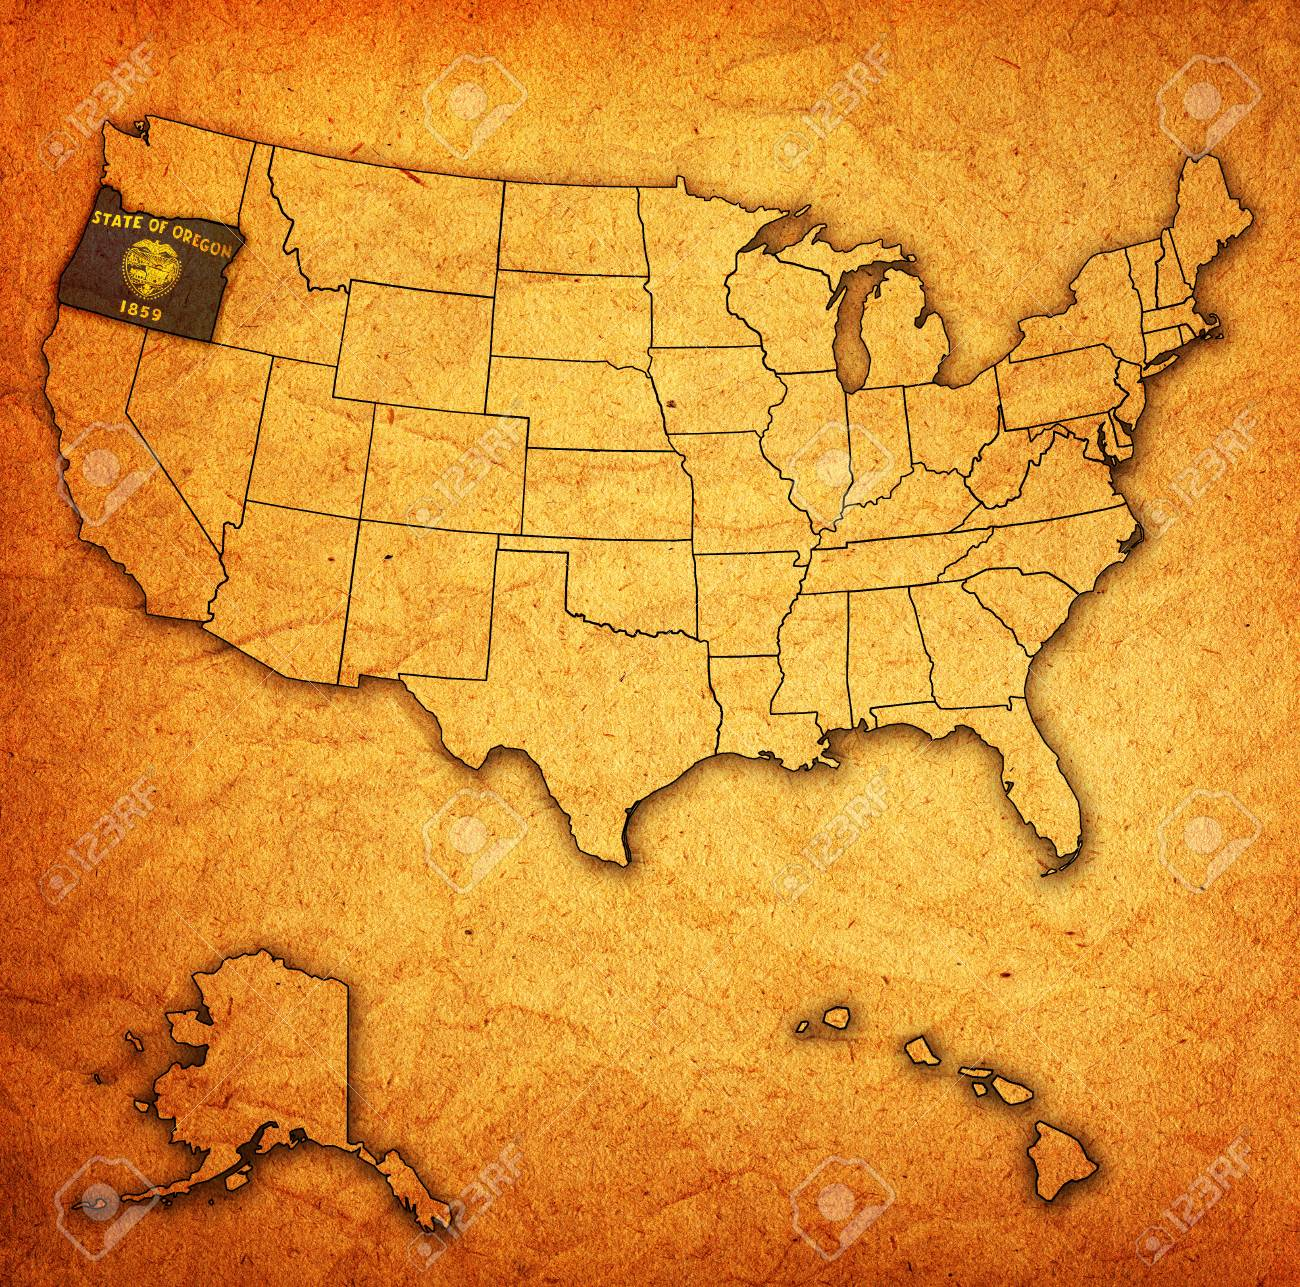 Vintage Oregon Map.Oregon On Old Vintage Map Of Usa With State Borders Stock Photo